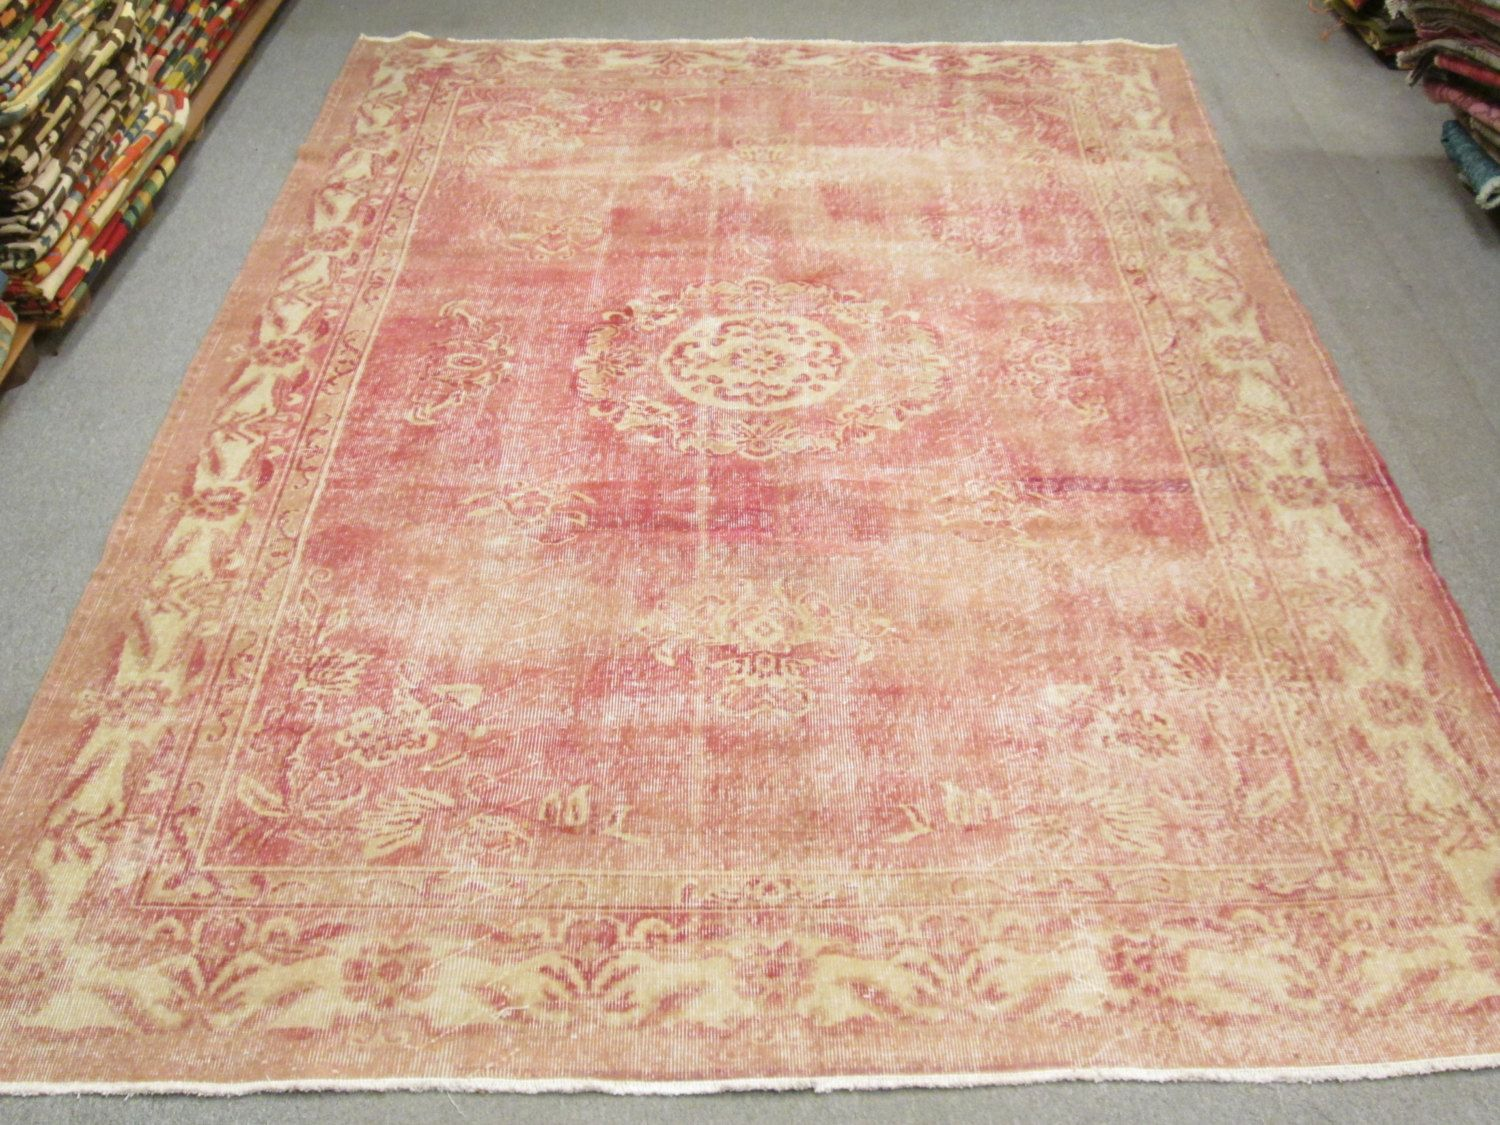 Vintage Turkish Oushak Wool Handmade Pale Pink Rug From